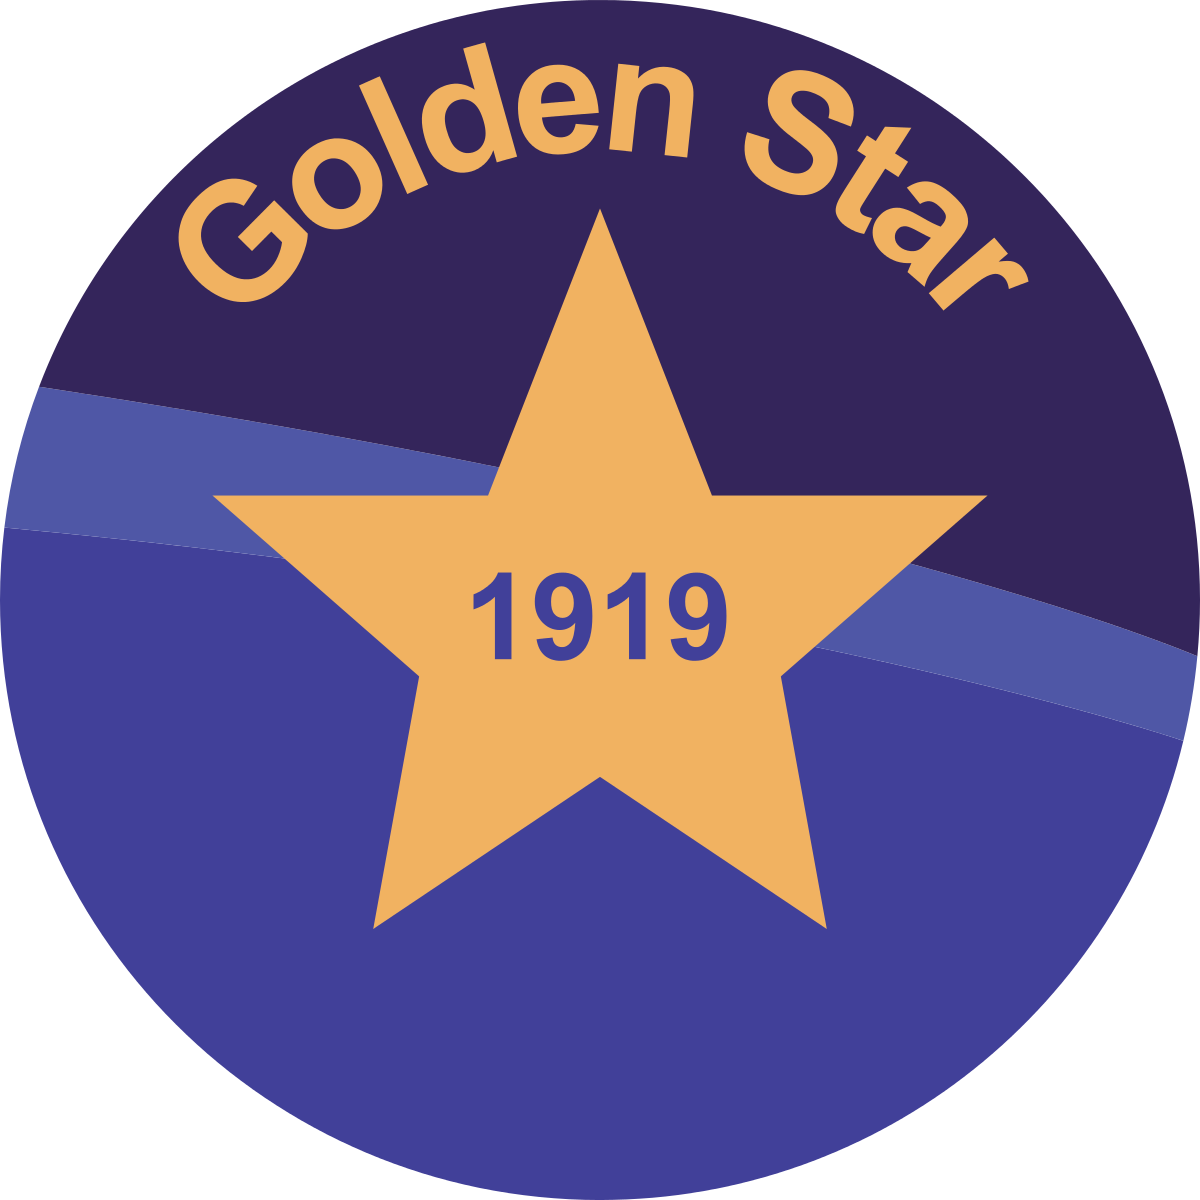 1200x1200 Golden Star (Football Club)